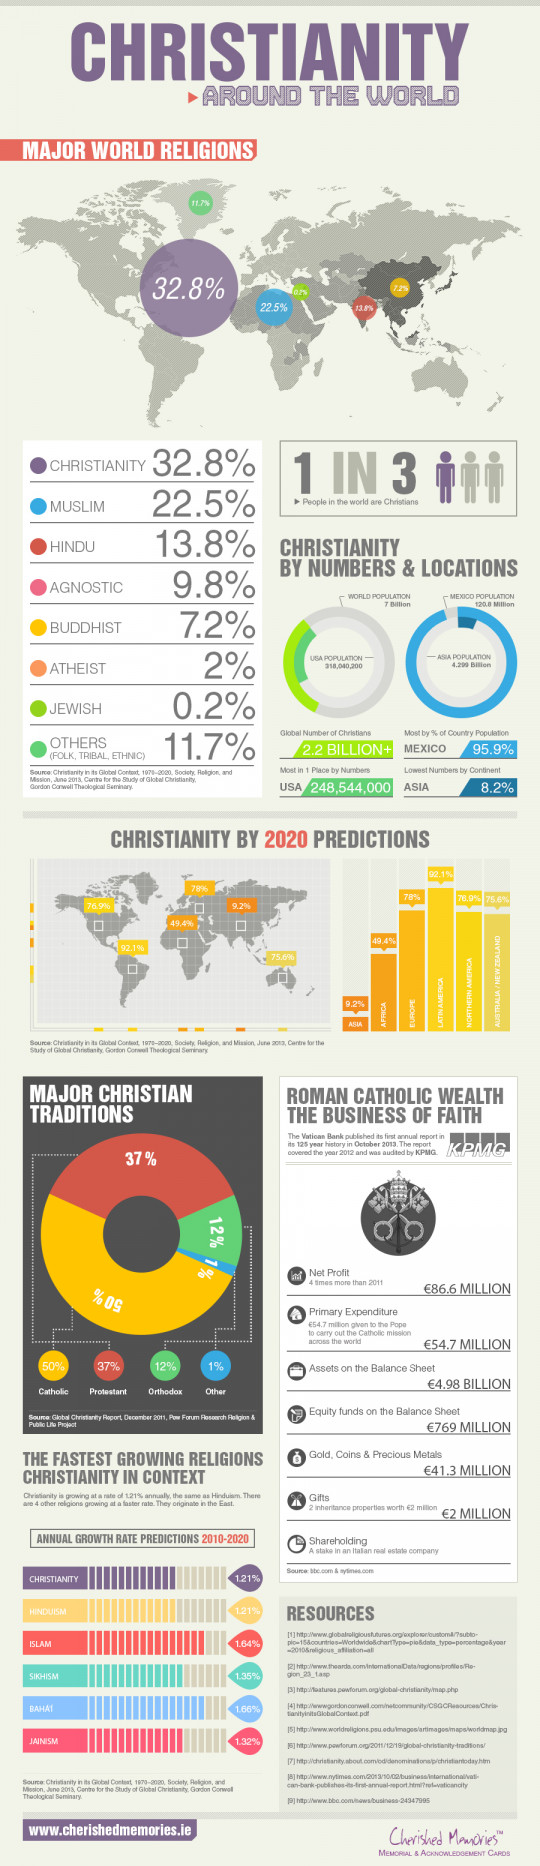 Christianity Around the World